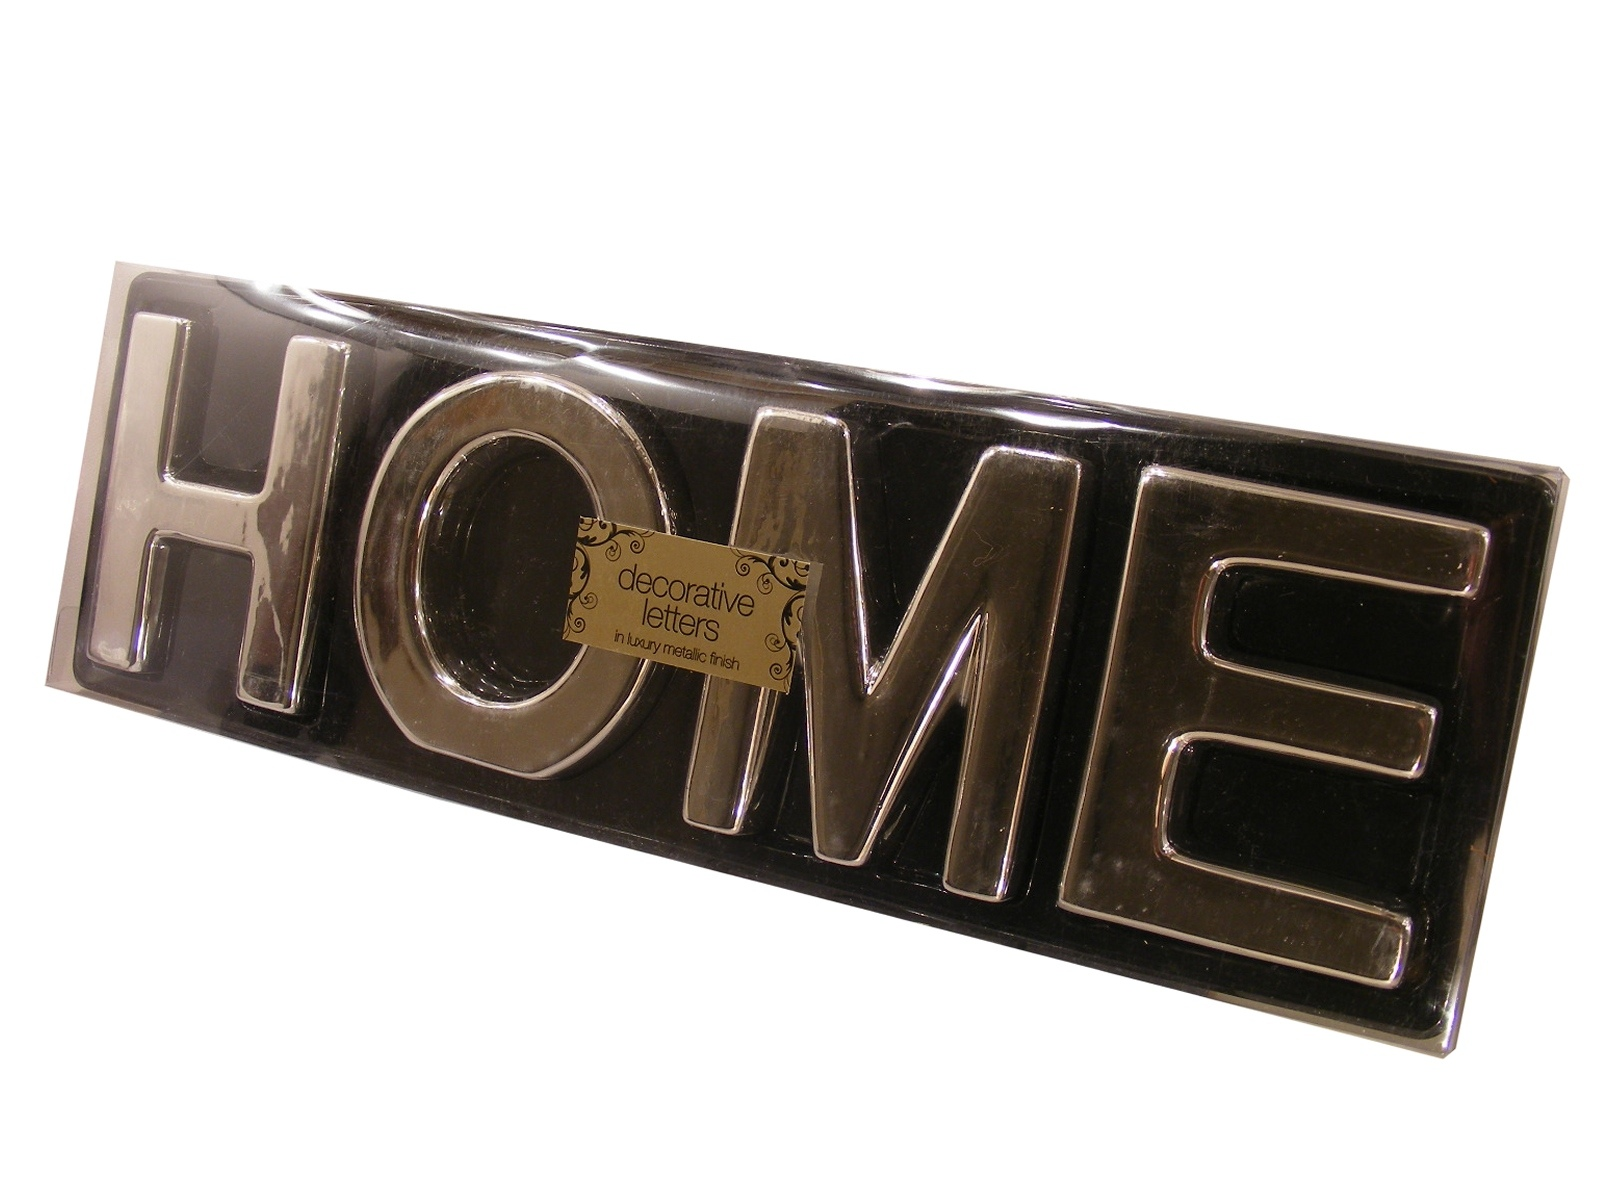 bn metallic finish decorative letters home